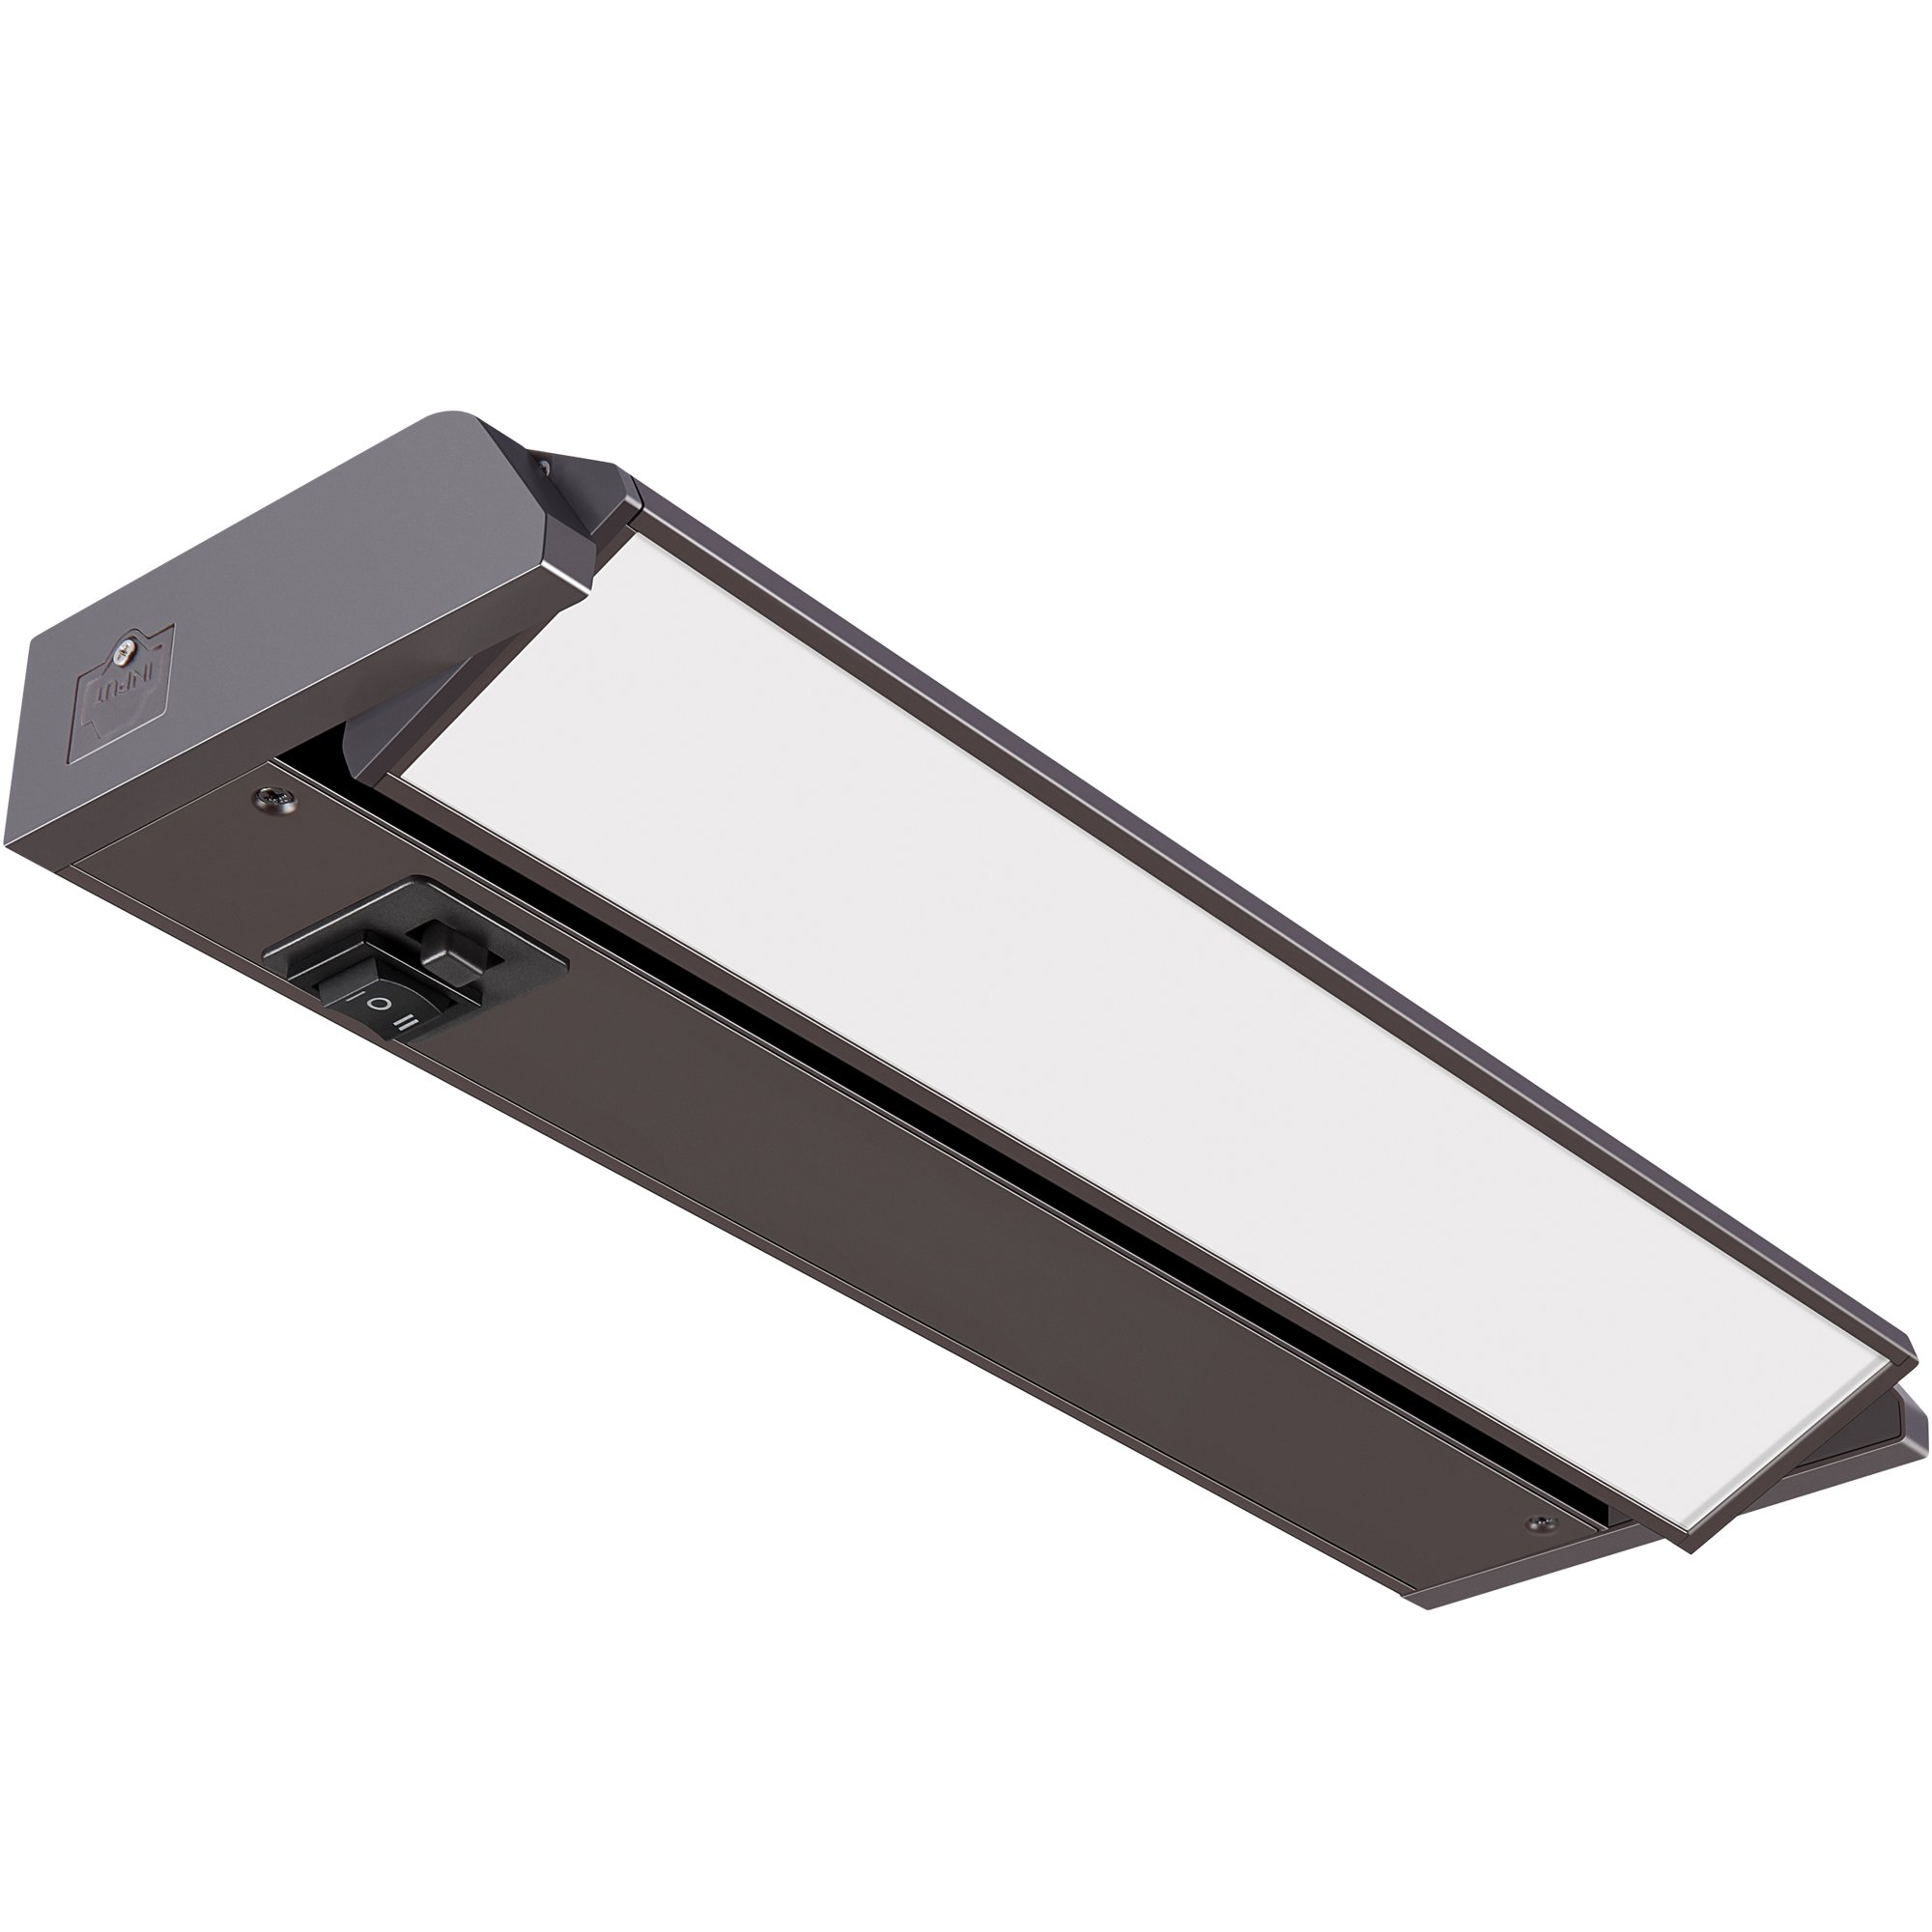 GetInLight 3 Color Levels Swivel LED Under Cabinet Light, Dimmable, Hardwired/Plug-in, Warm White(2700K), Soft White(3000K), Bright White(4000K), Bronze Finished, 12-inch, IN-0202-1-BZ